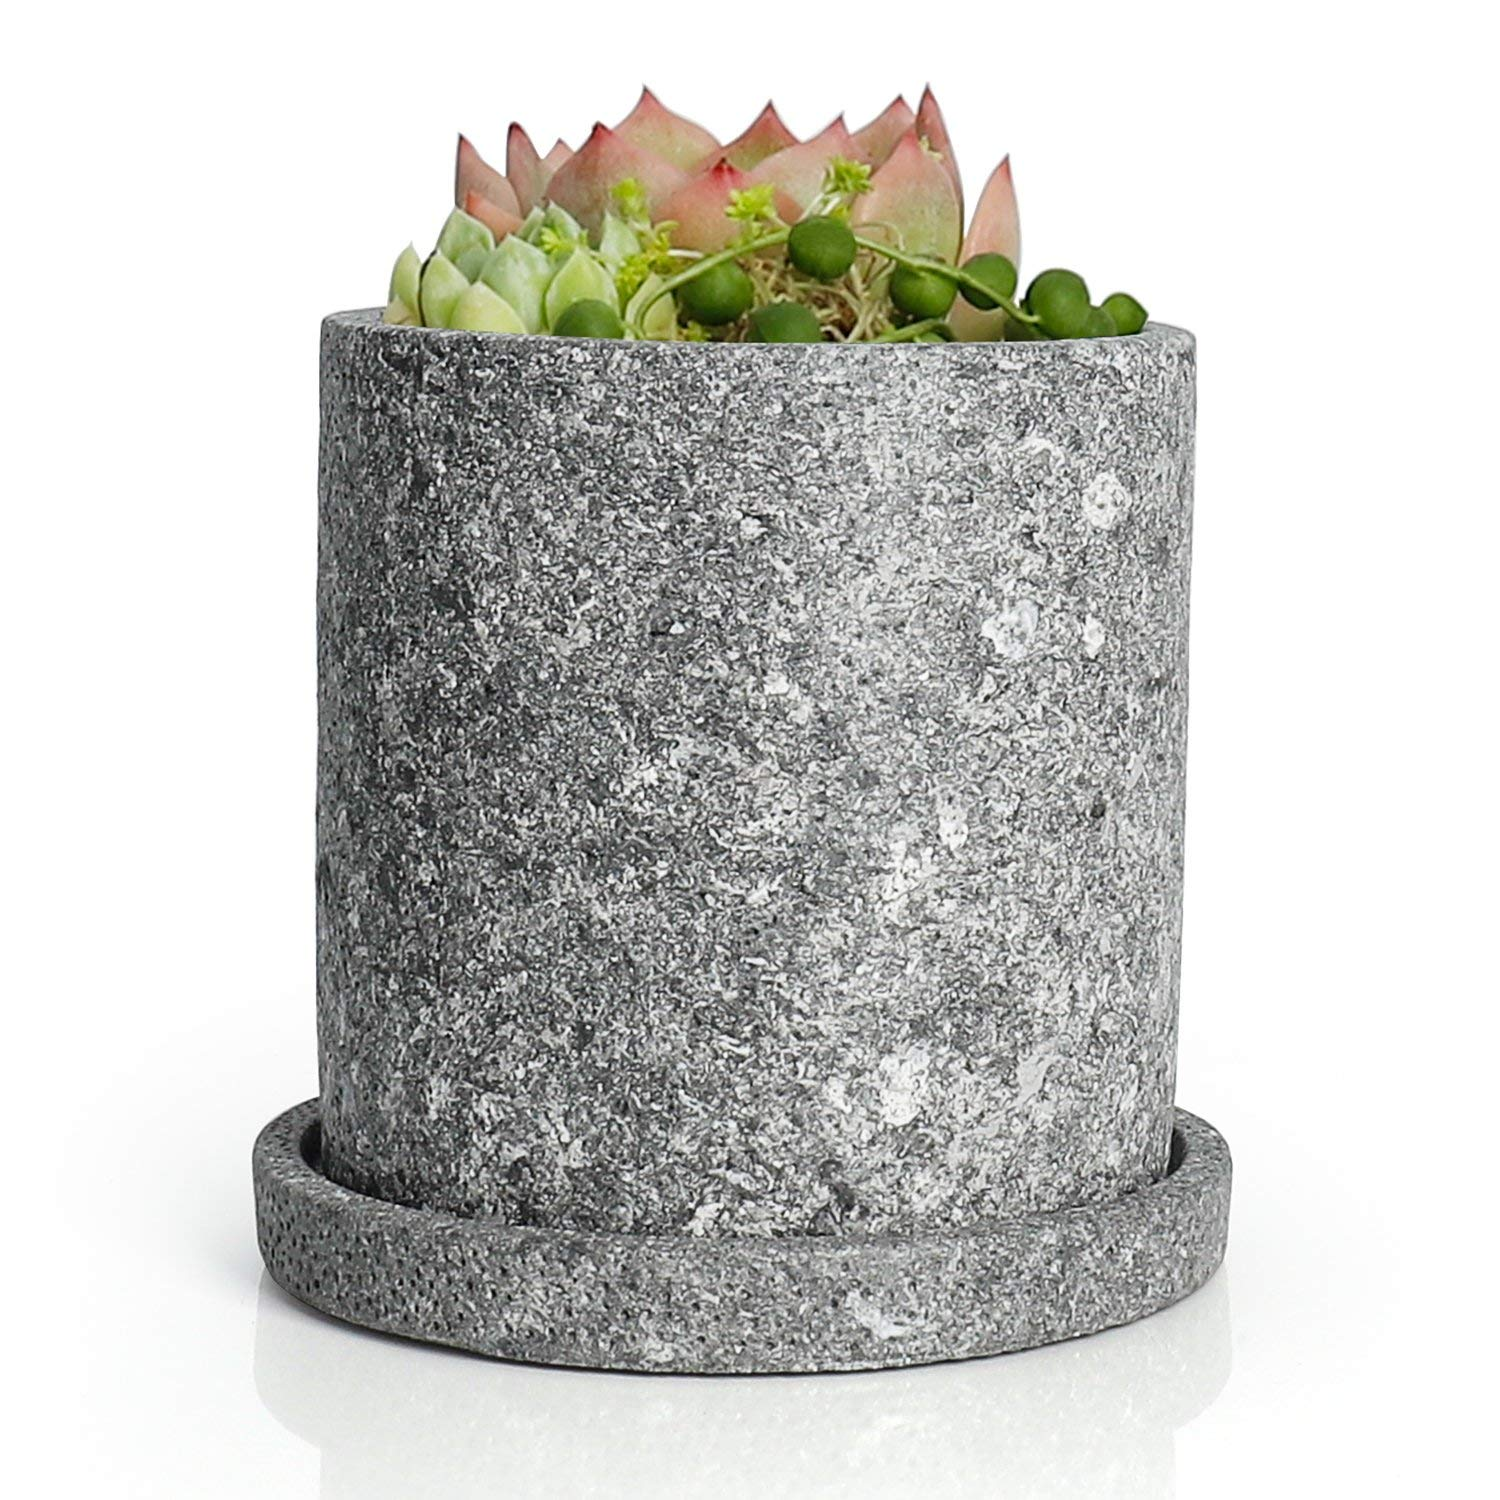 Greenaholics Succulent Plant Pots - 5.1 Inch Cement Cylinder Depth Planter with Drainage Hole and Tray, Gray